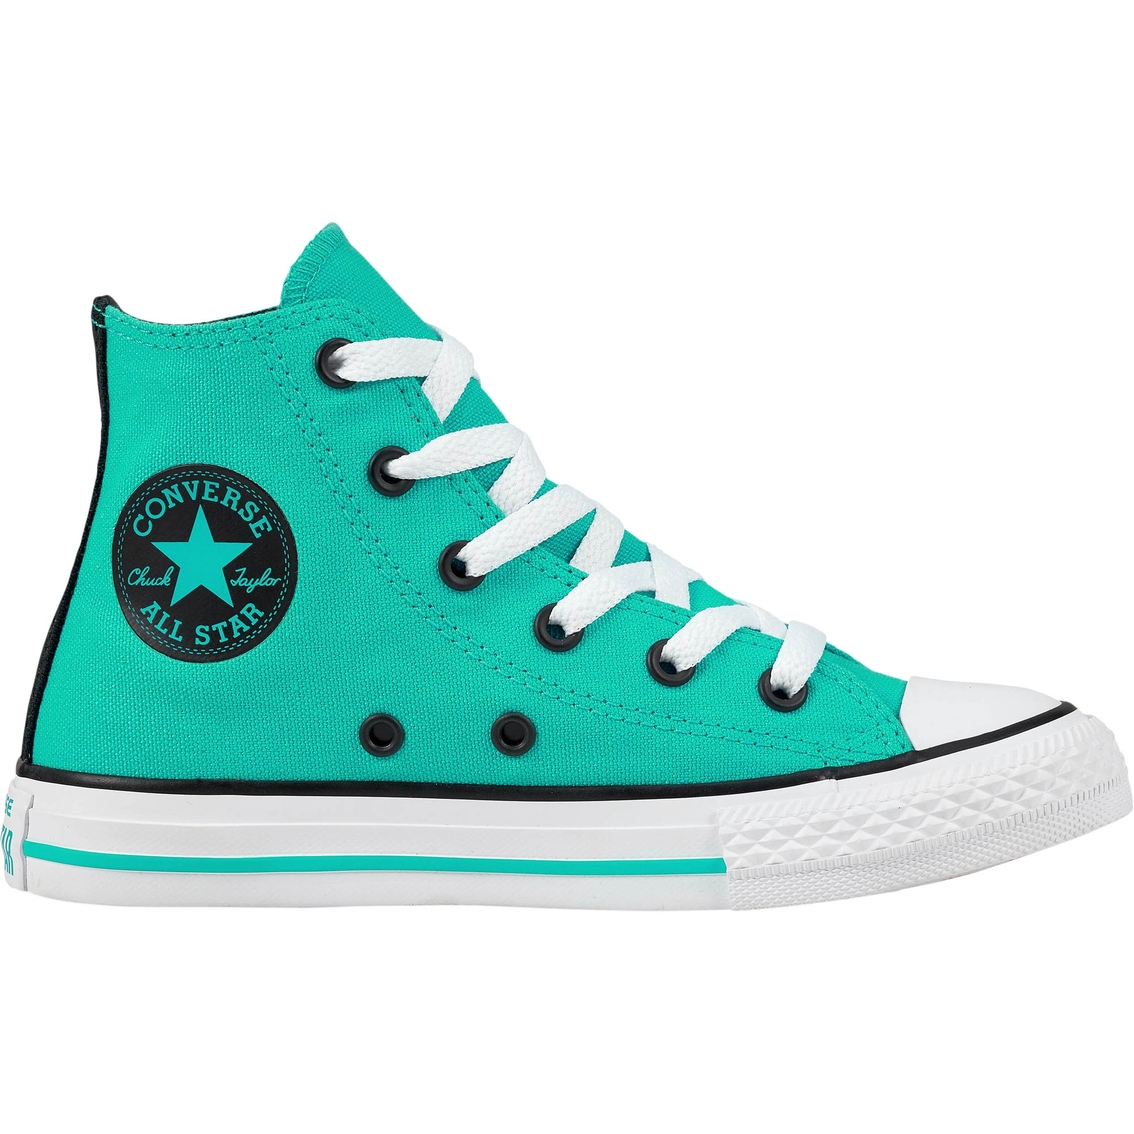 Converse Chuck Taylor All Star High Top Sneakers  63f49a342